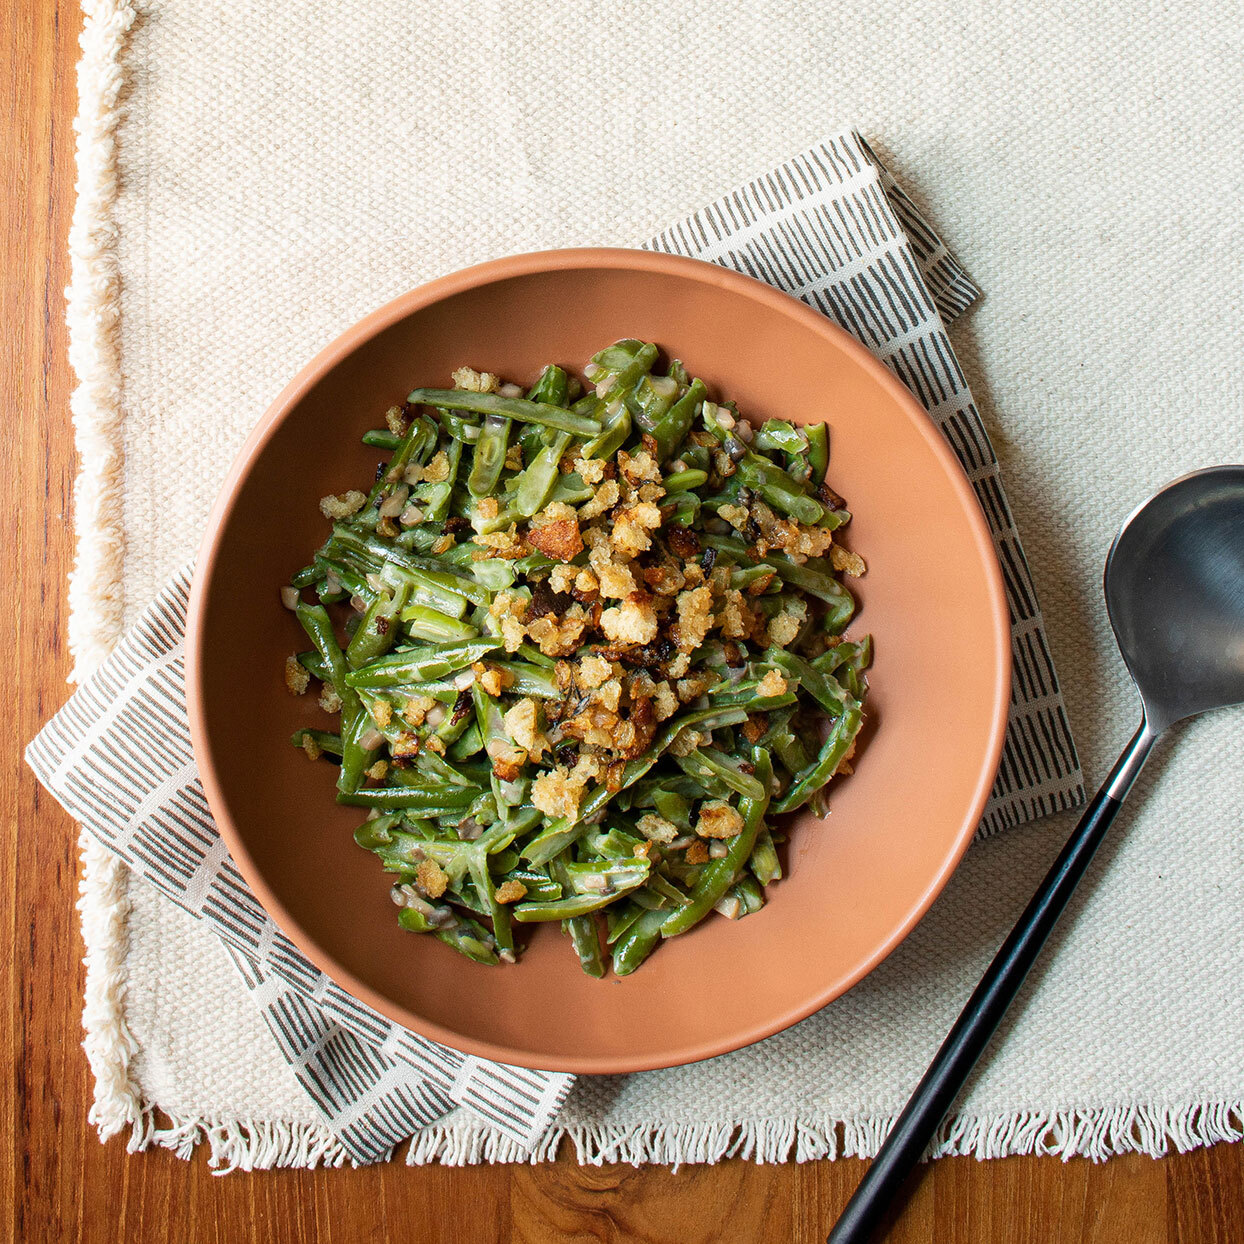 Skillet Green Bean Casserole for Two